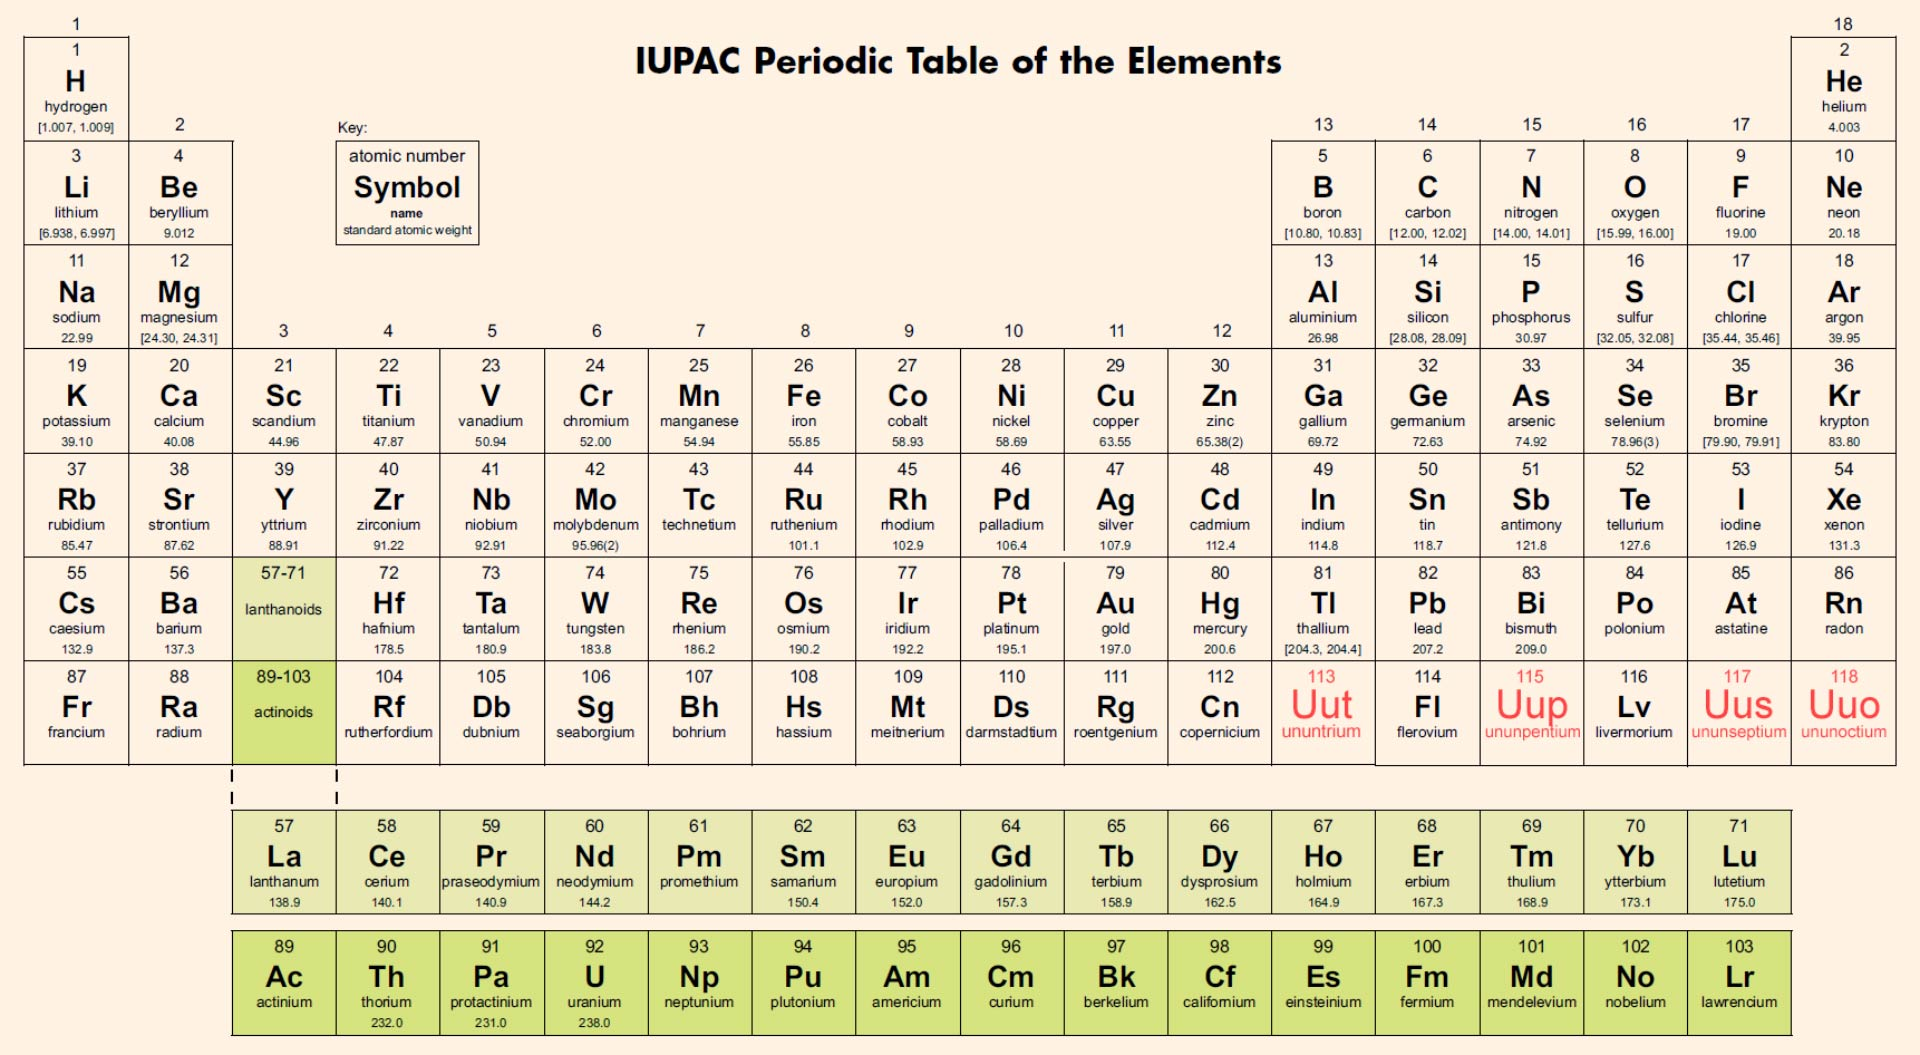 IUPAC Periodic Table of the Elements